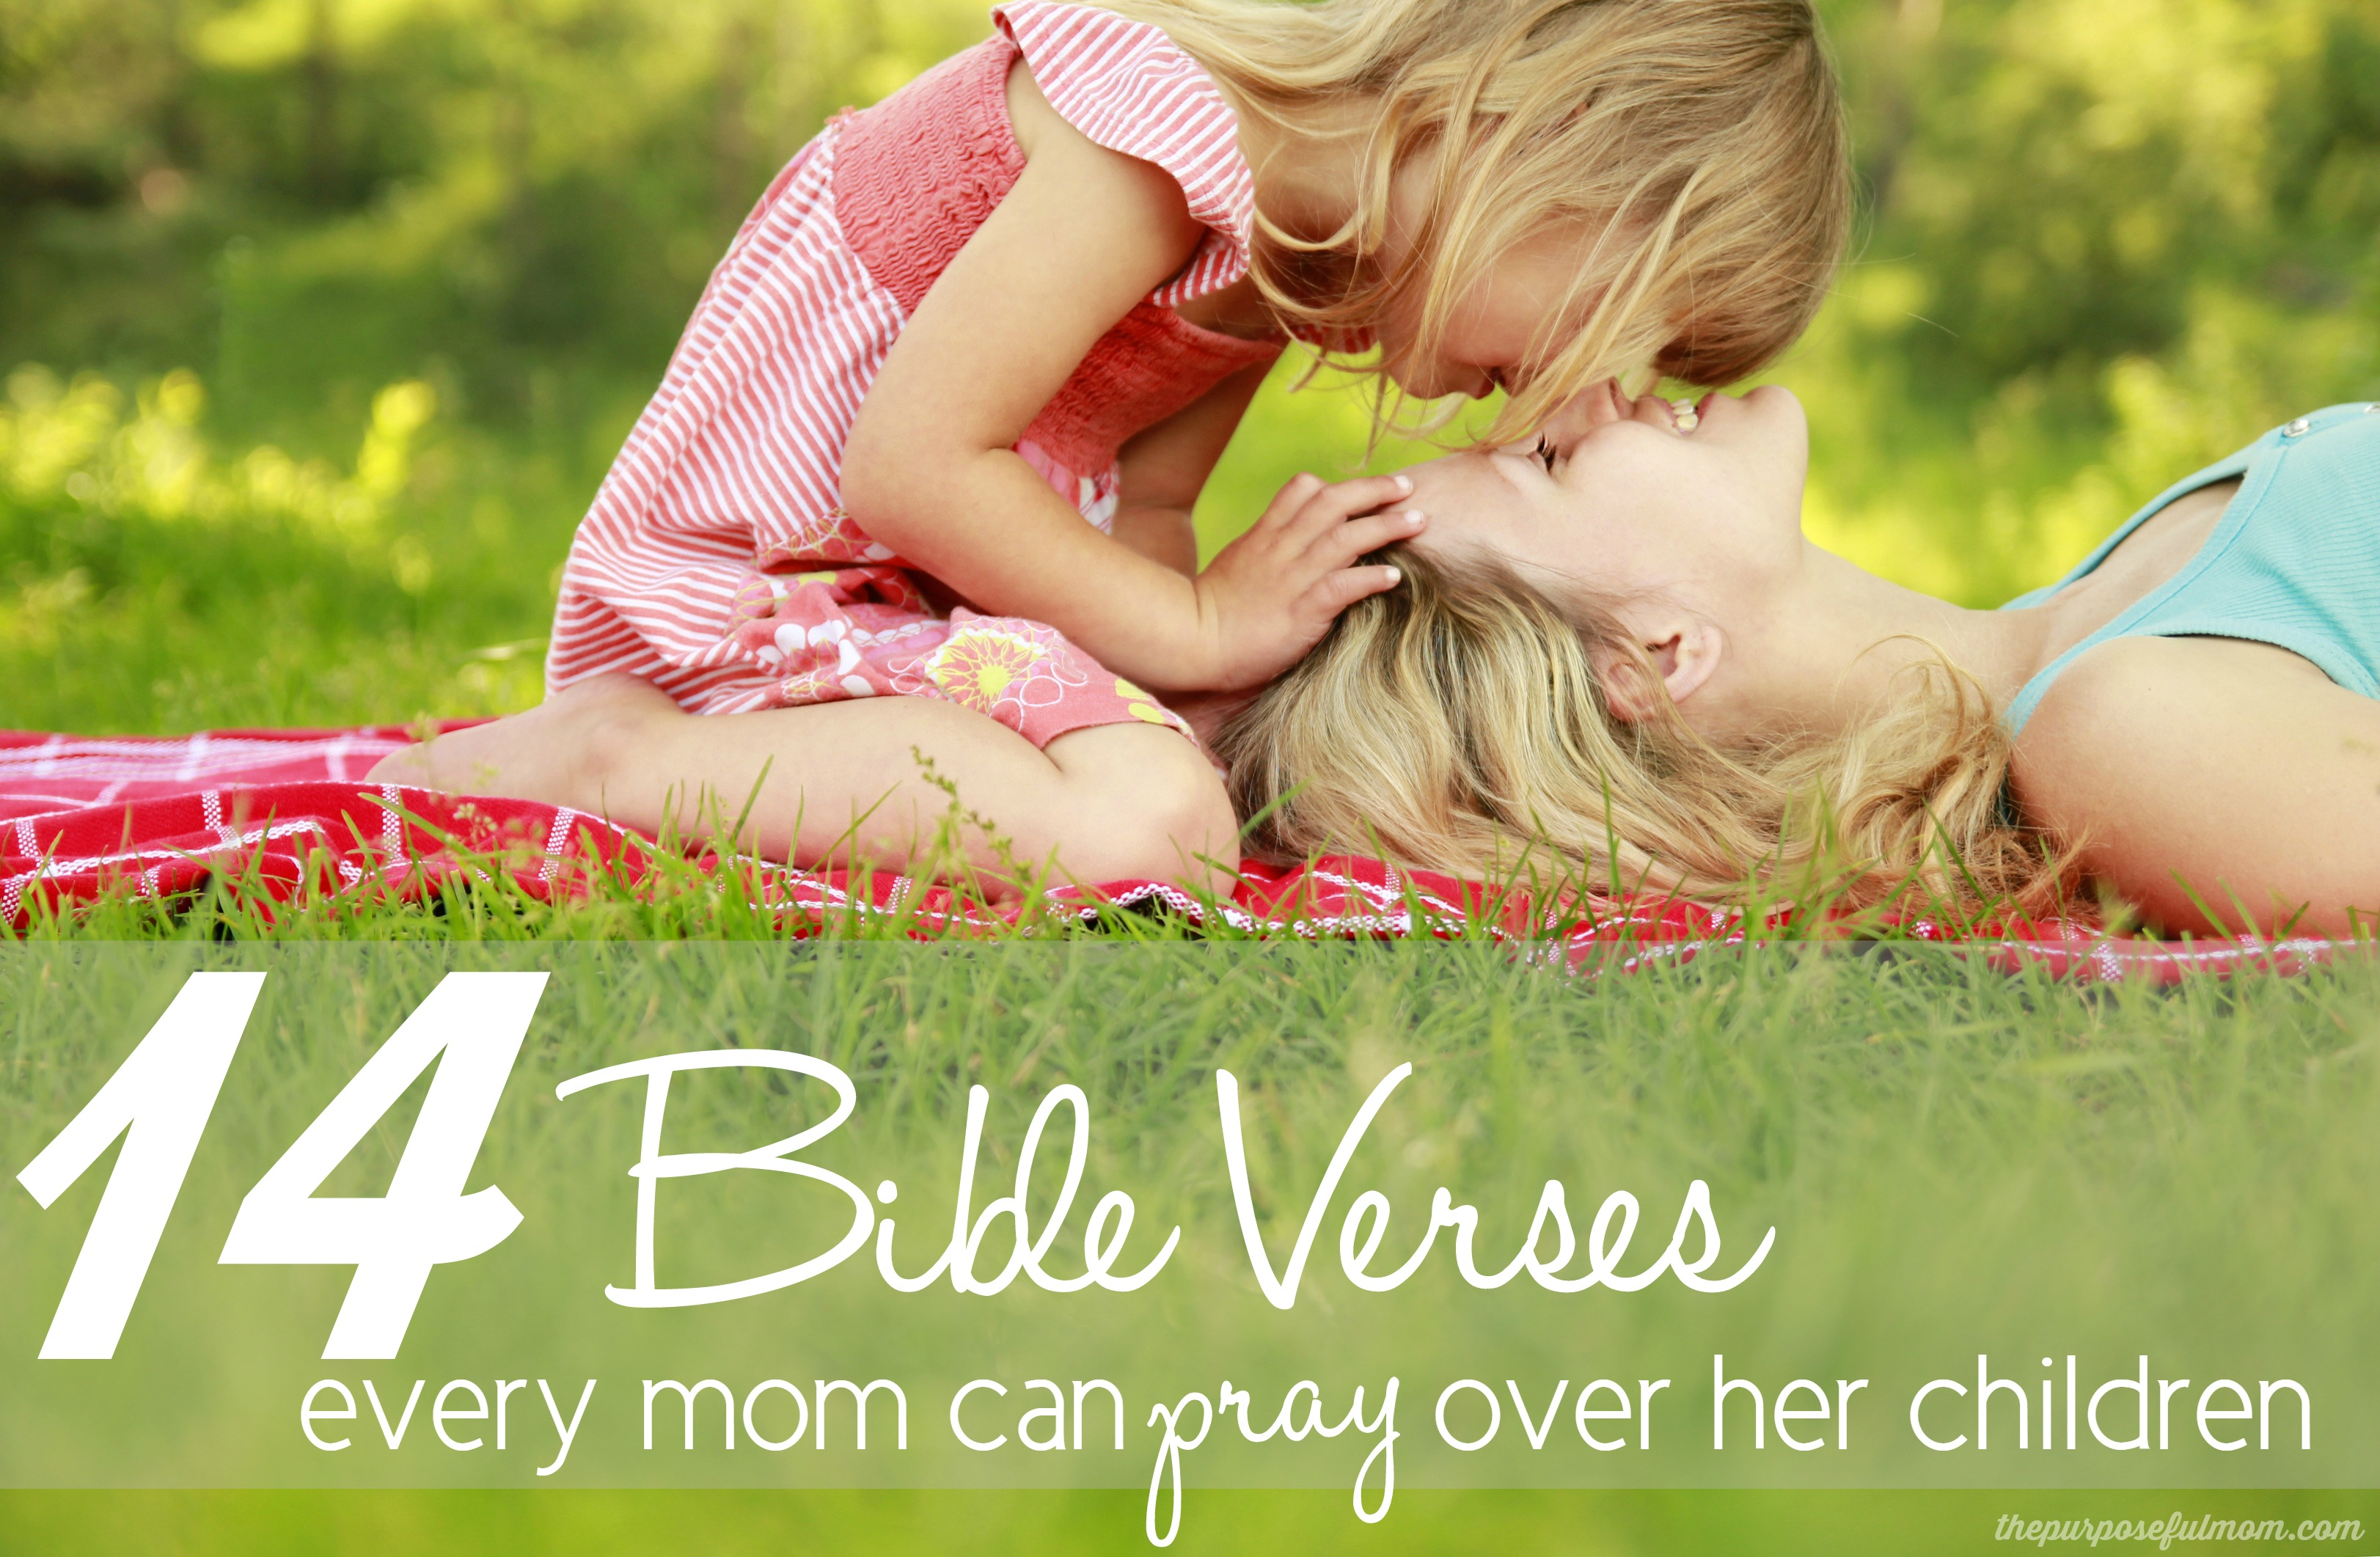 14 bible verses every mom can pray over her children the